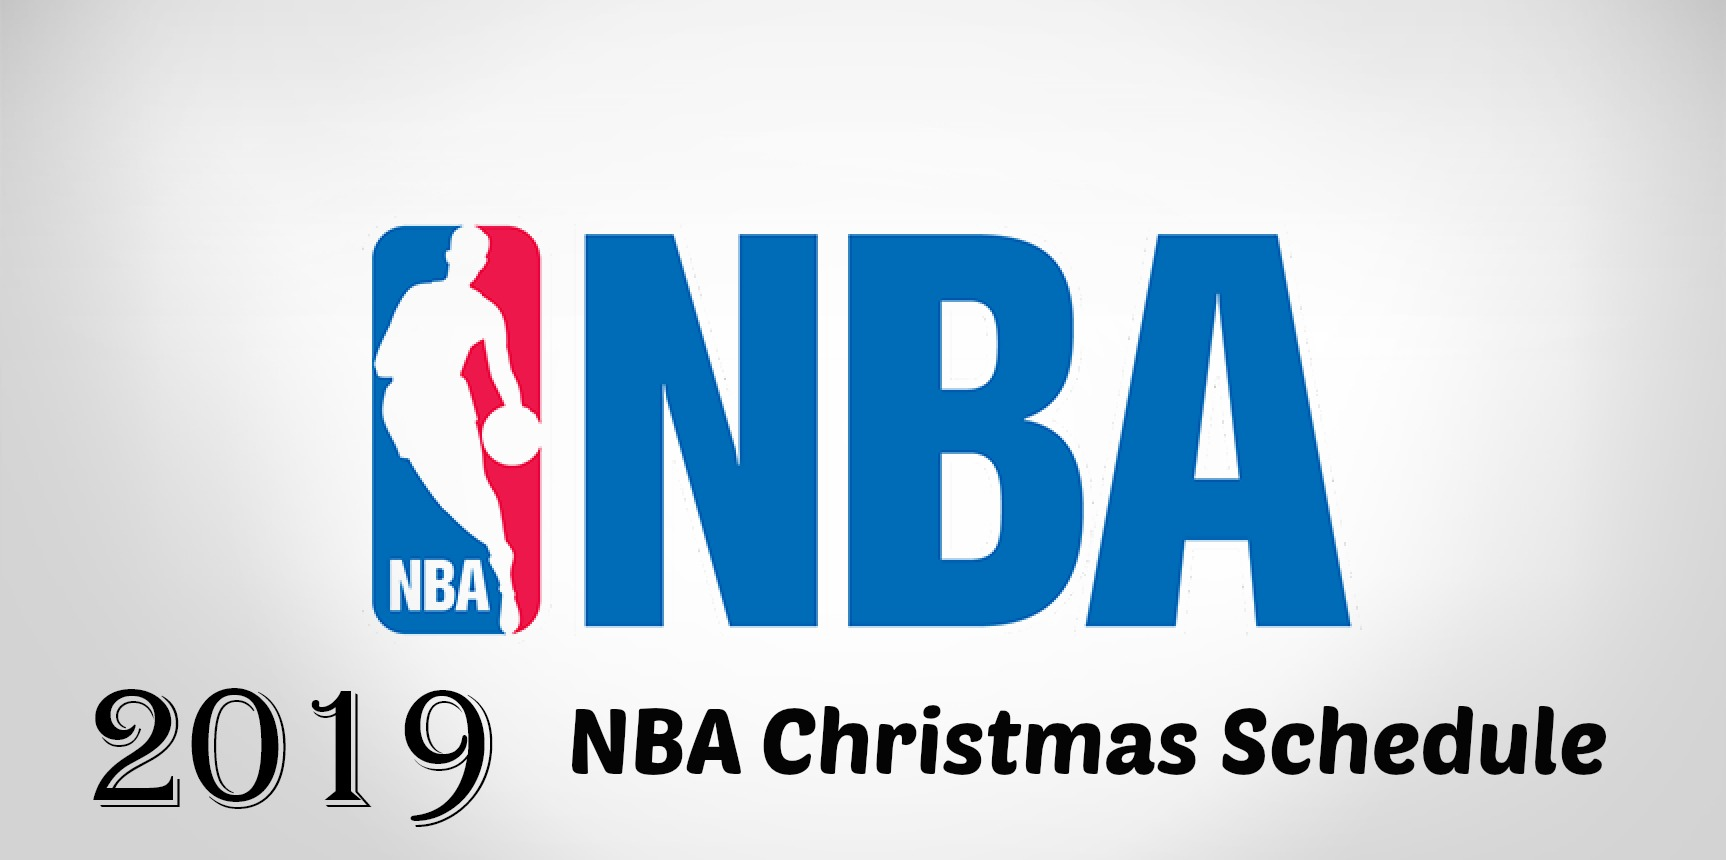 2019 NBA Christmas Schedule: Are You Ready?